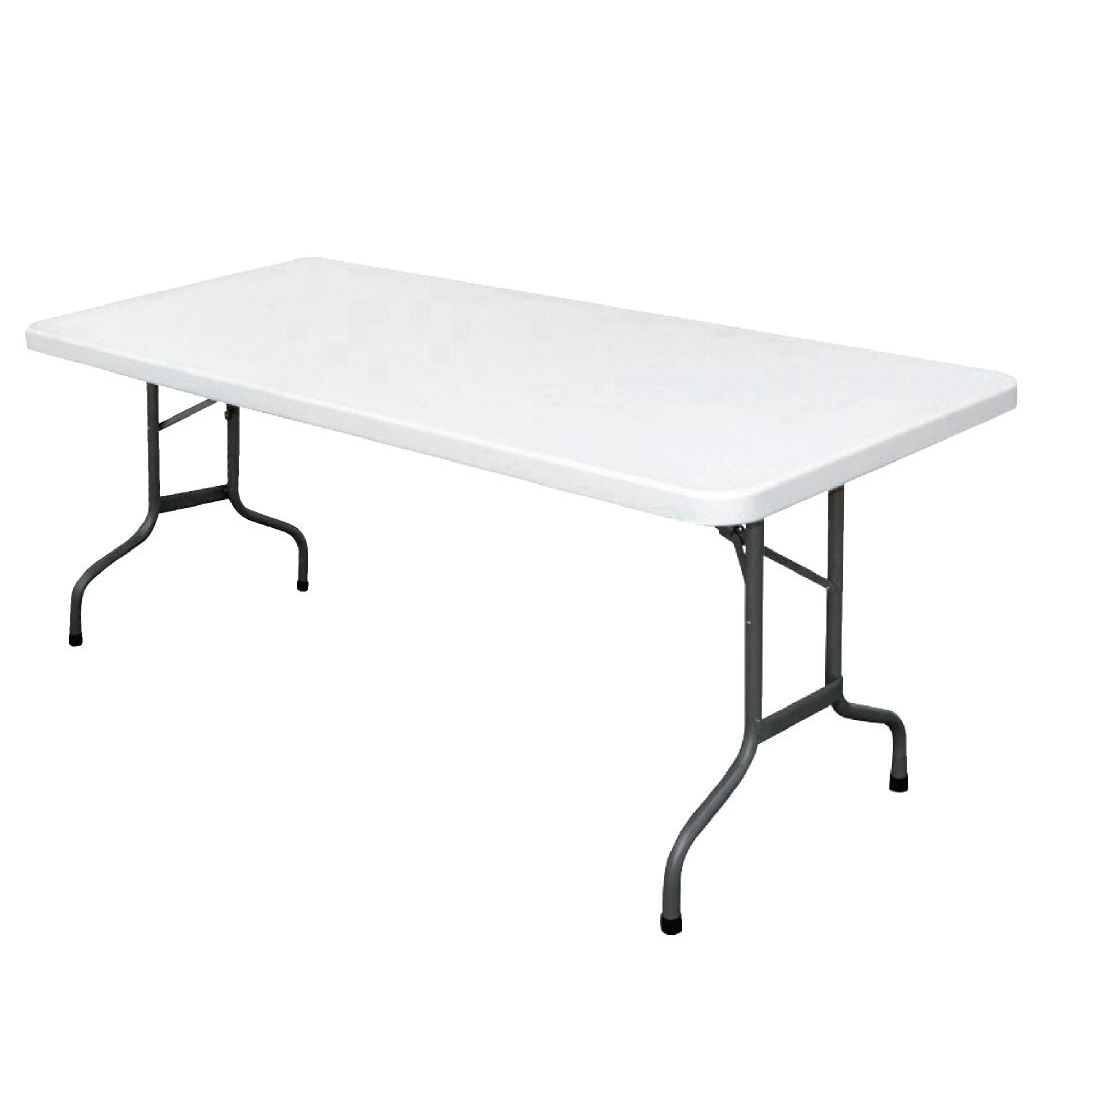 Table Polypropylène Details About Bolero Foldaway Rectangular Table Made Of Polypropylene And Steel 745x1827x750mm